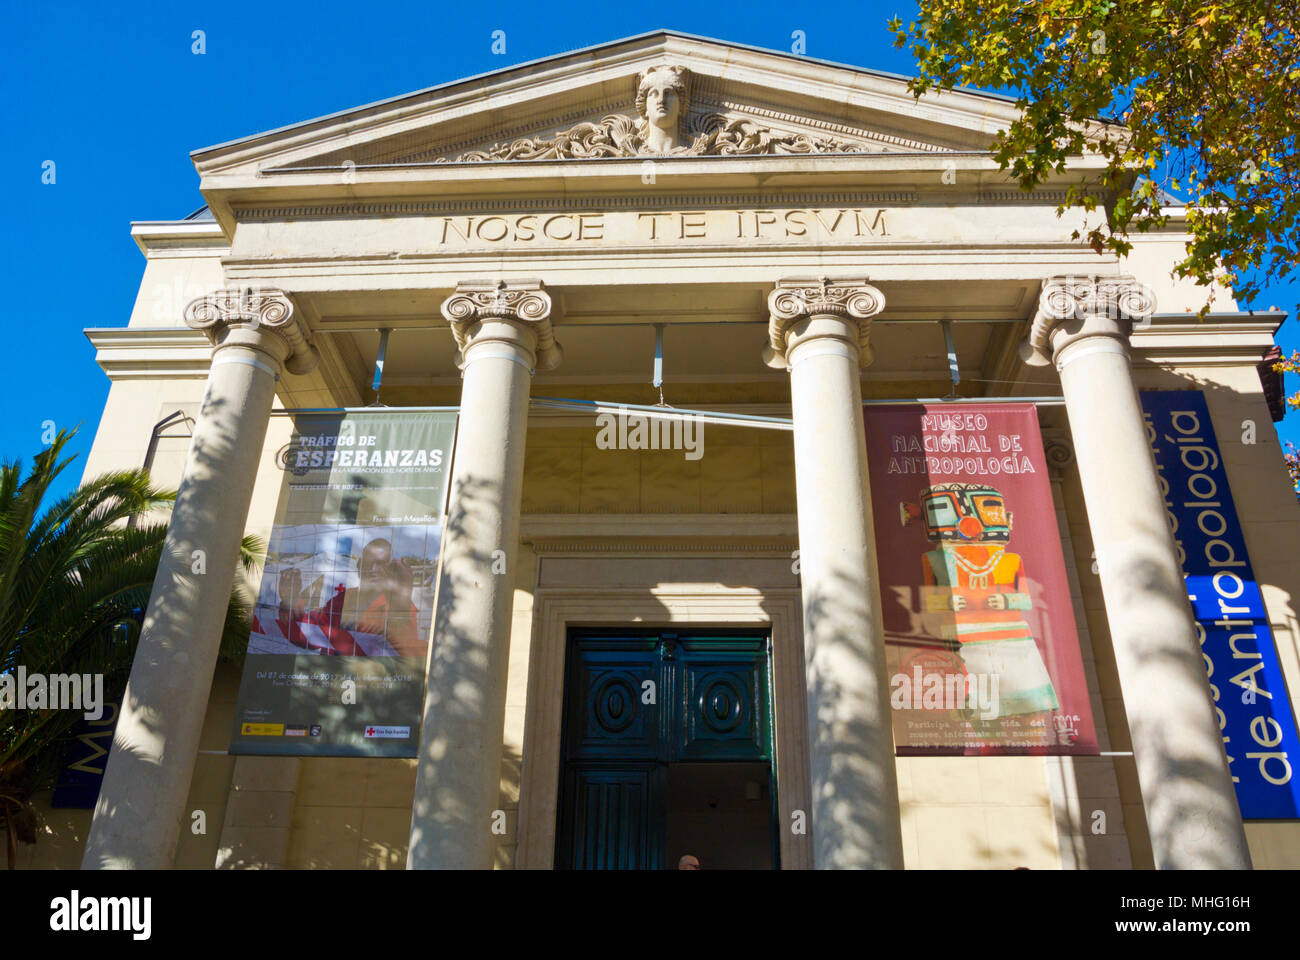 Museo de Antropologia, museum of anthropology, Madrid, Spain - Stock Image